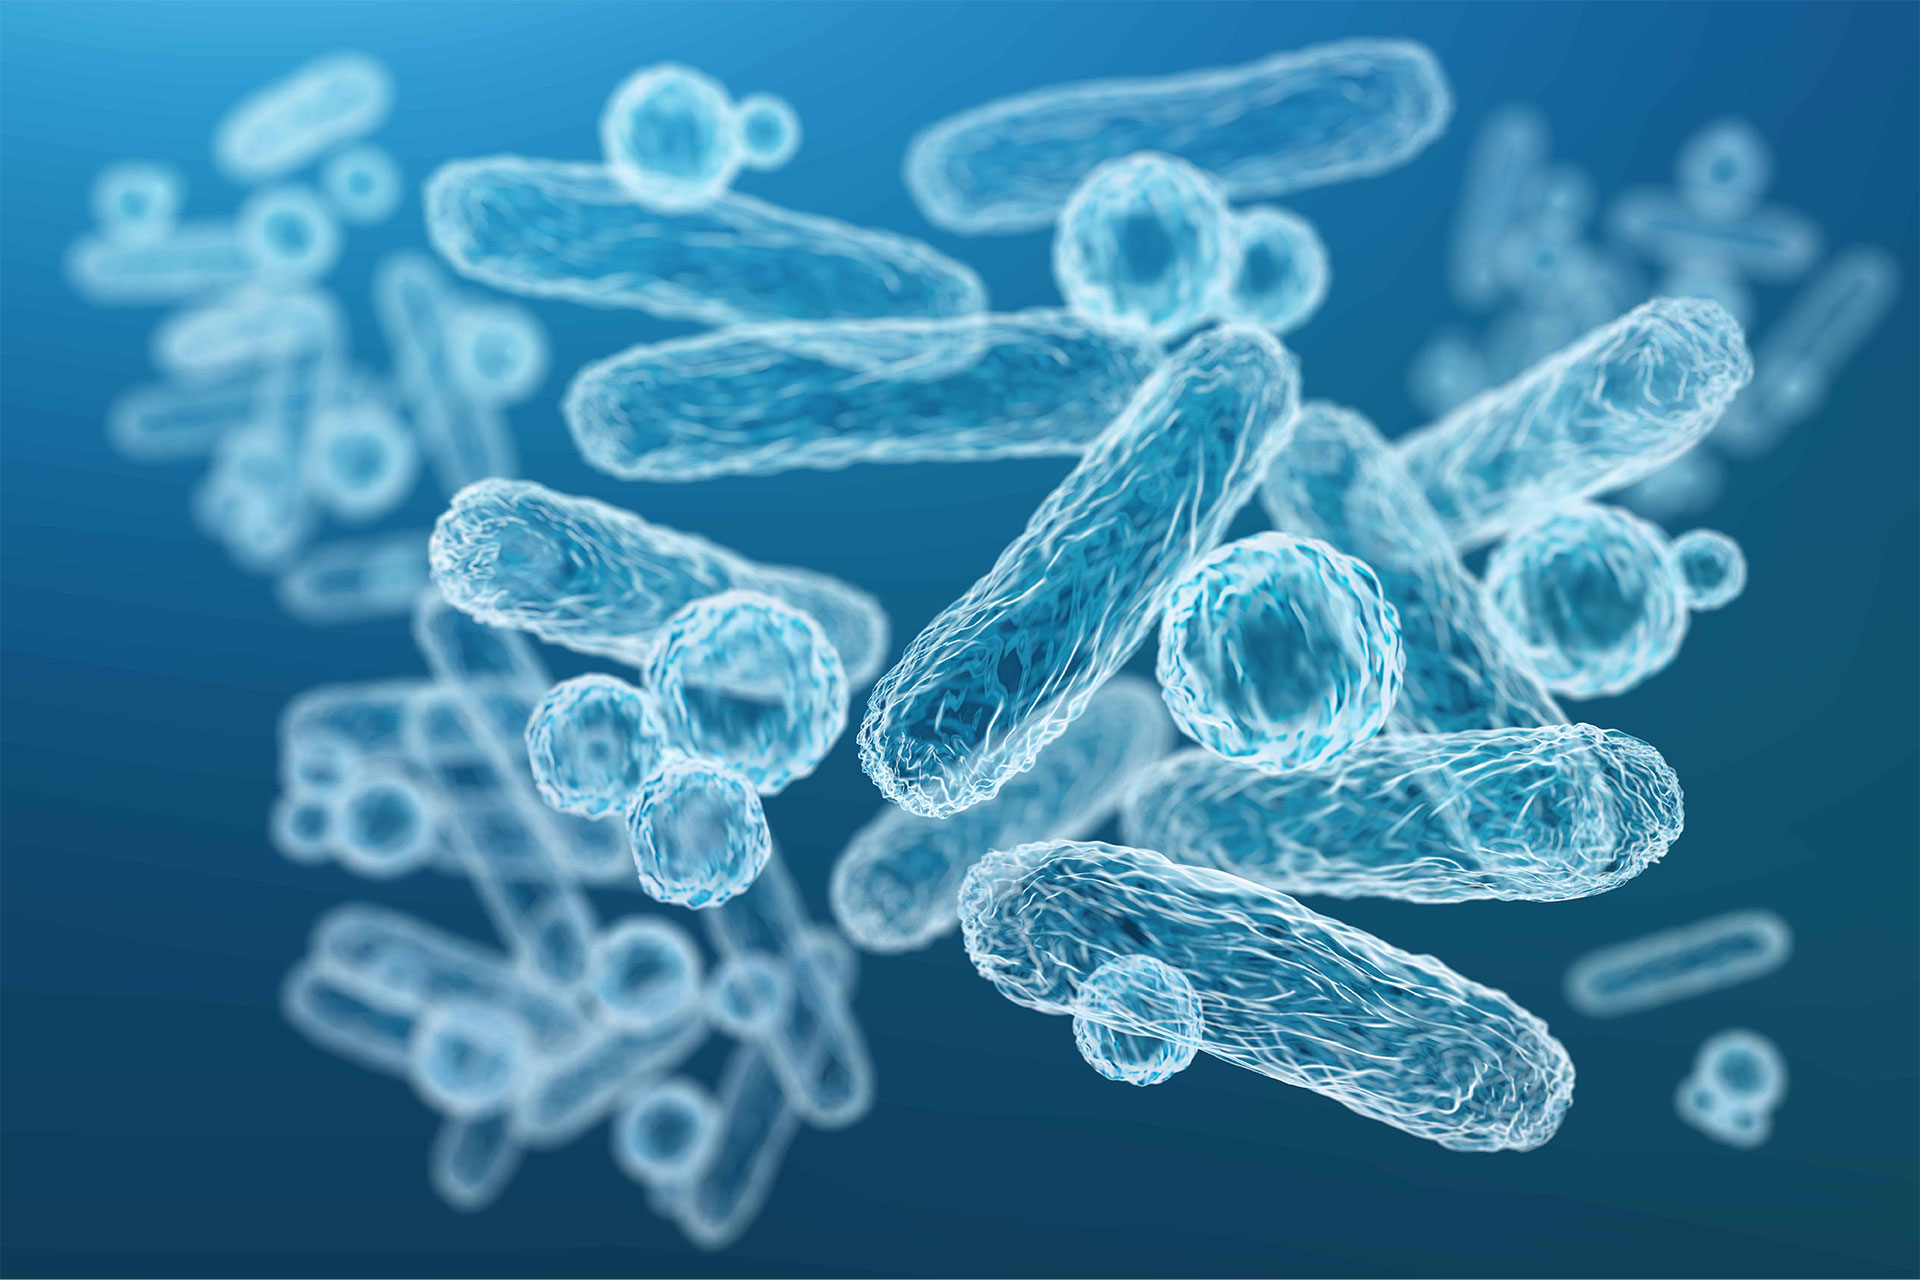 Microbiome_background_image